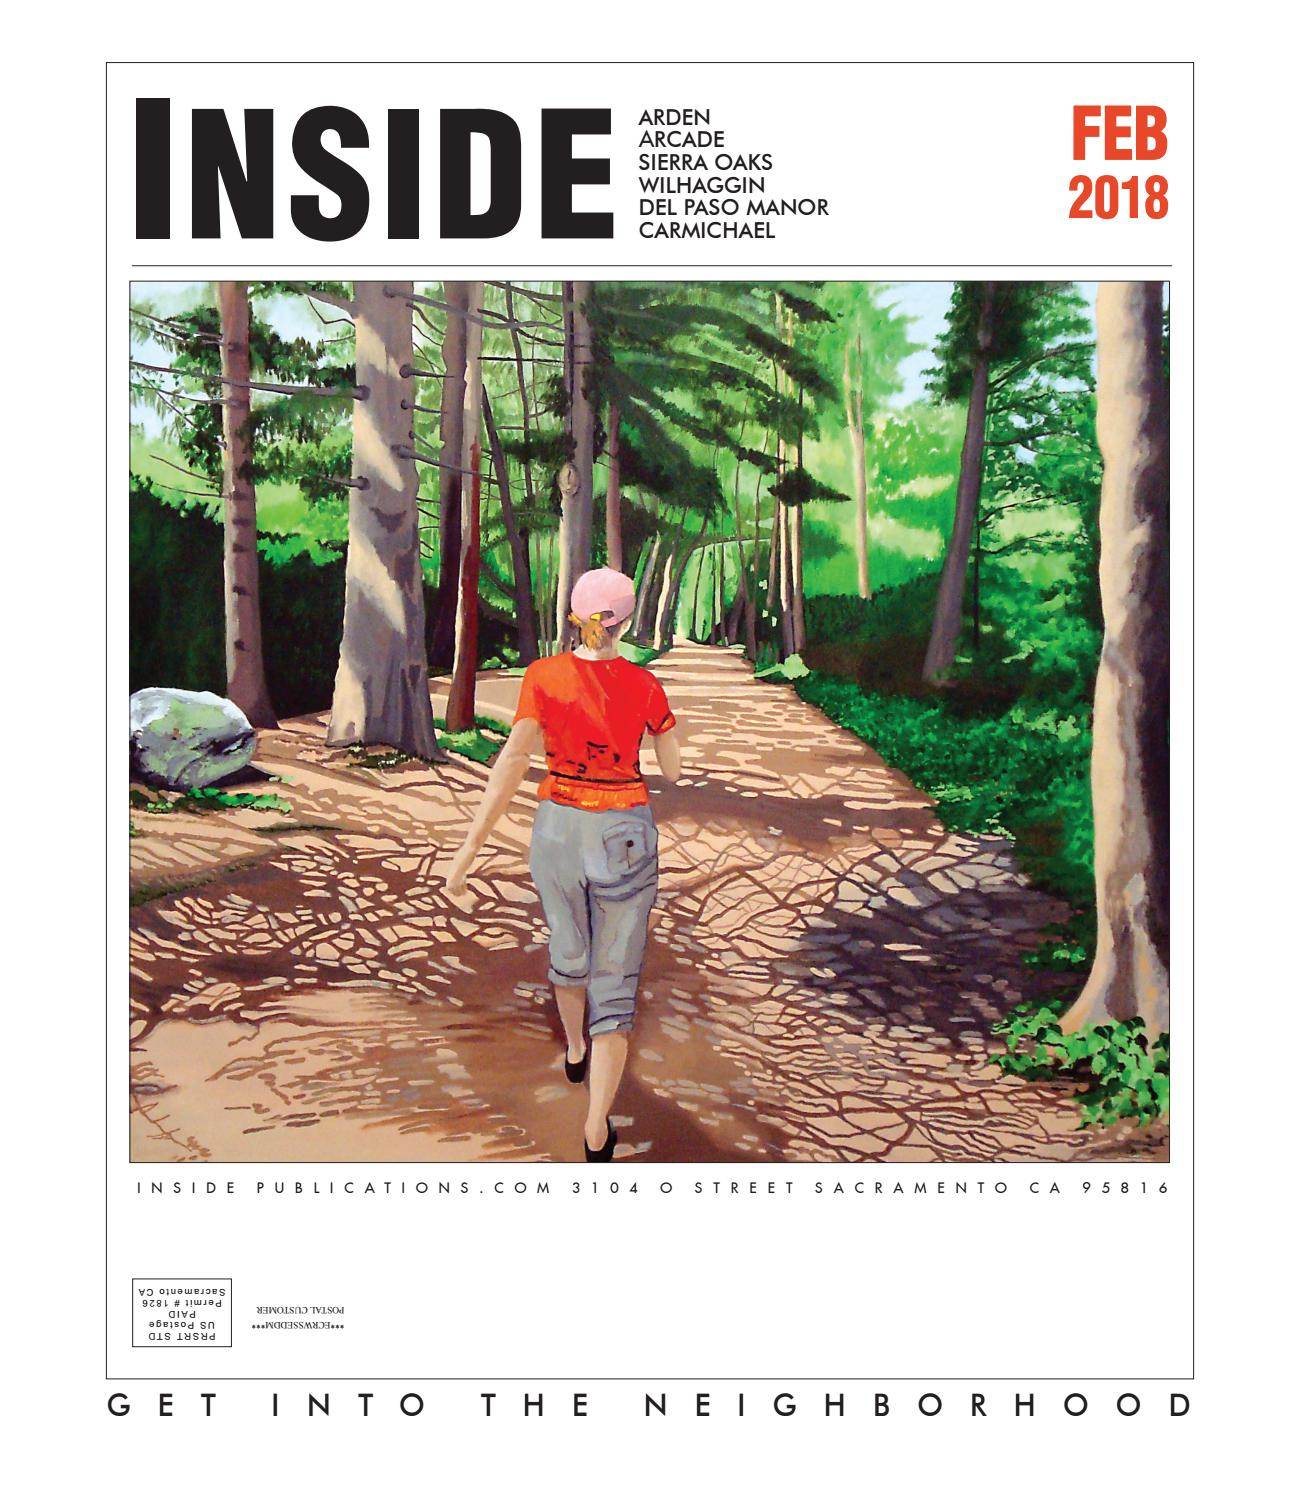 Inside arden feb 2018 by Inside Publications issuu